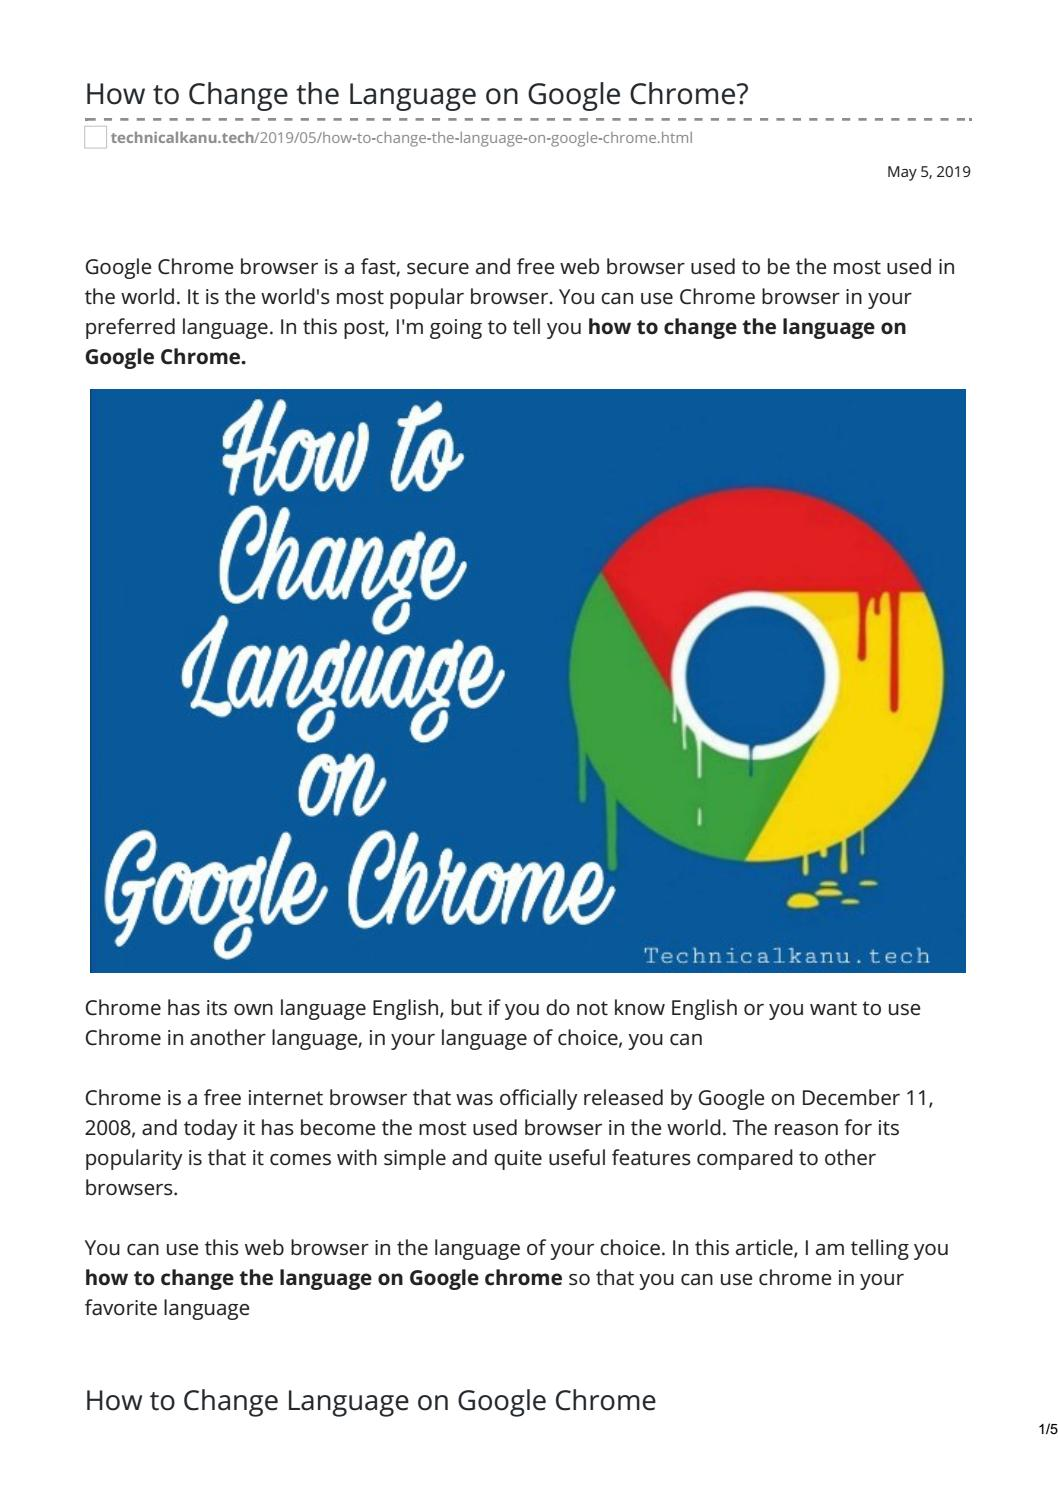 How to Change the Language on Google Chrome? by Technical